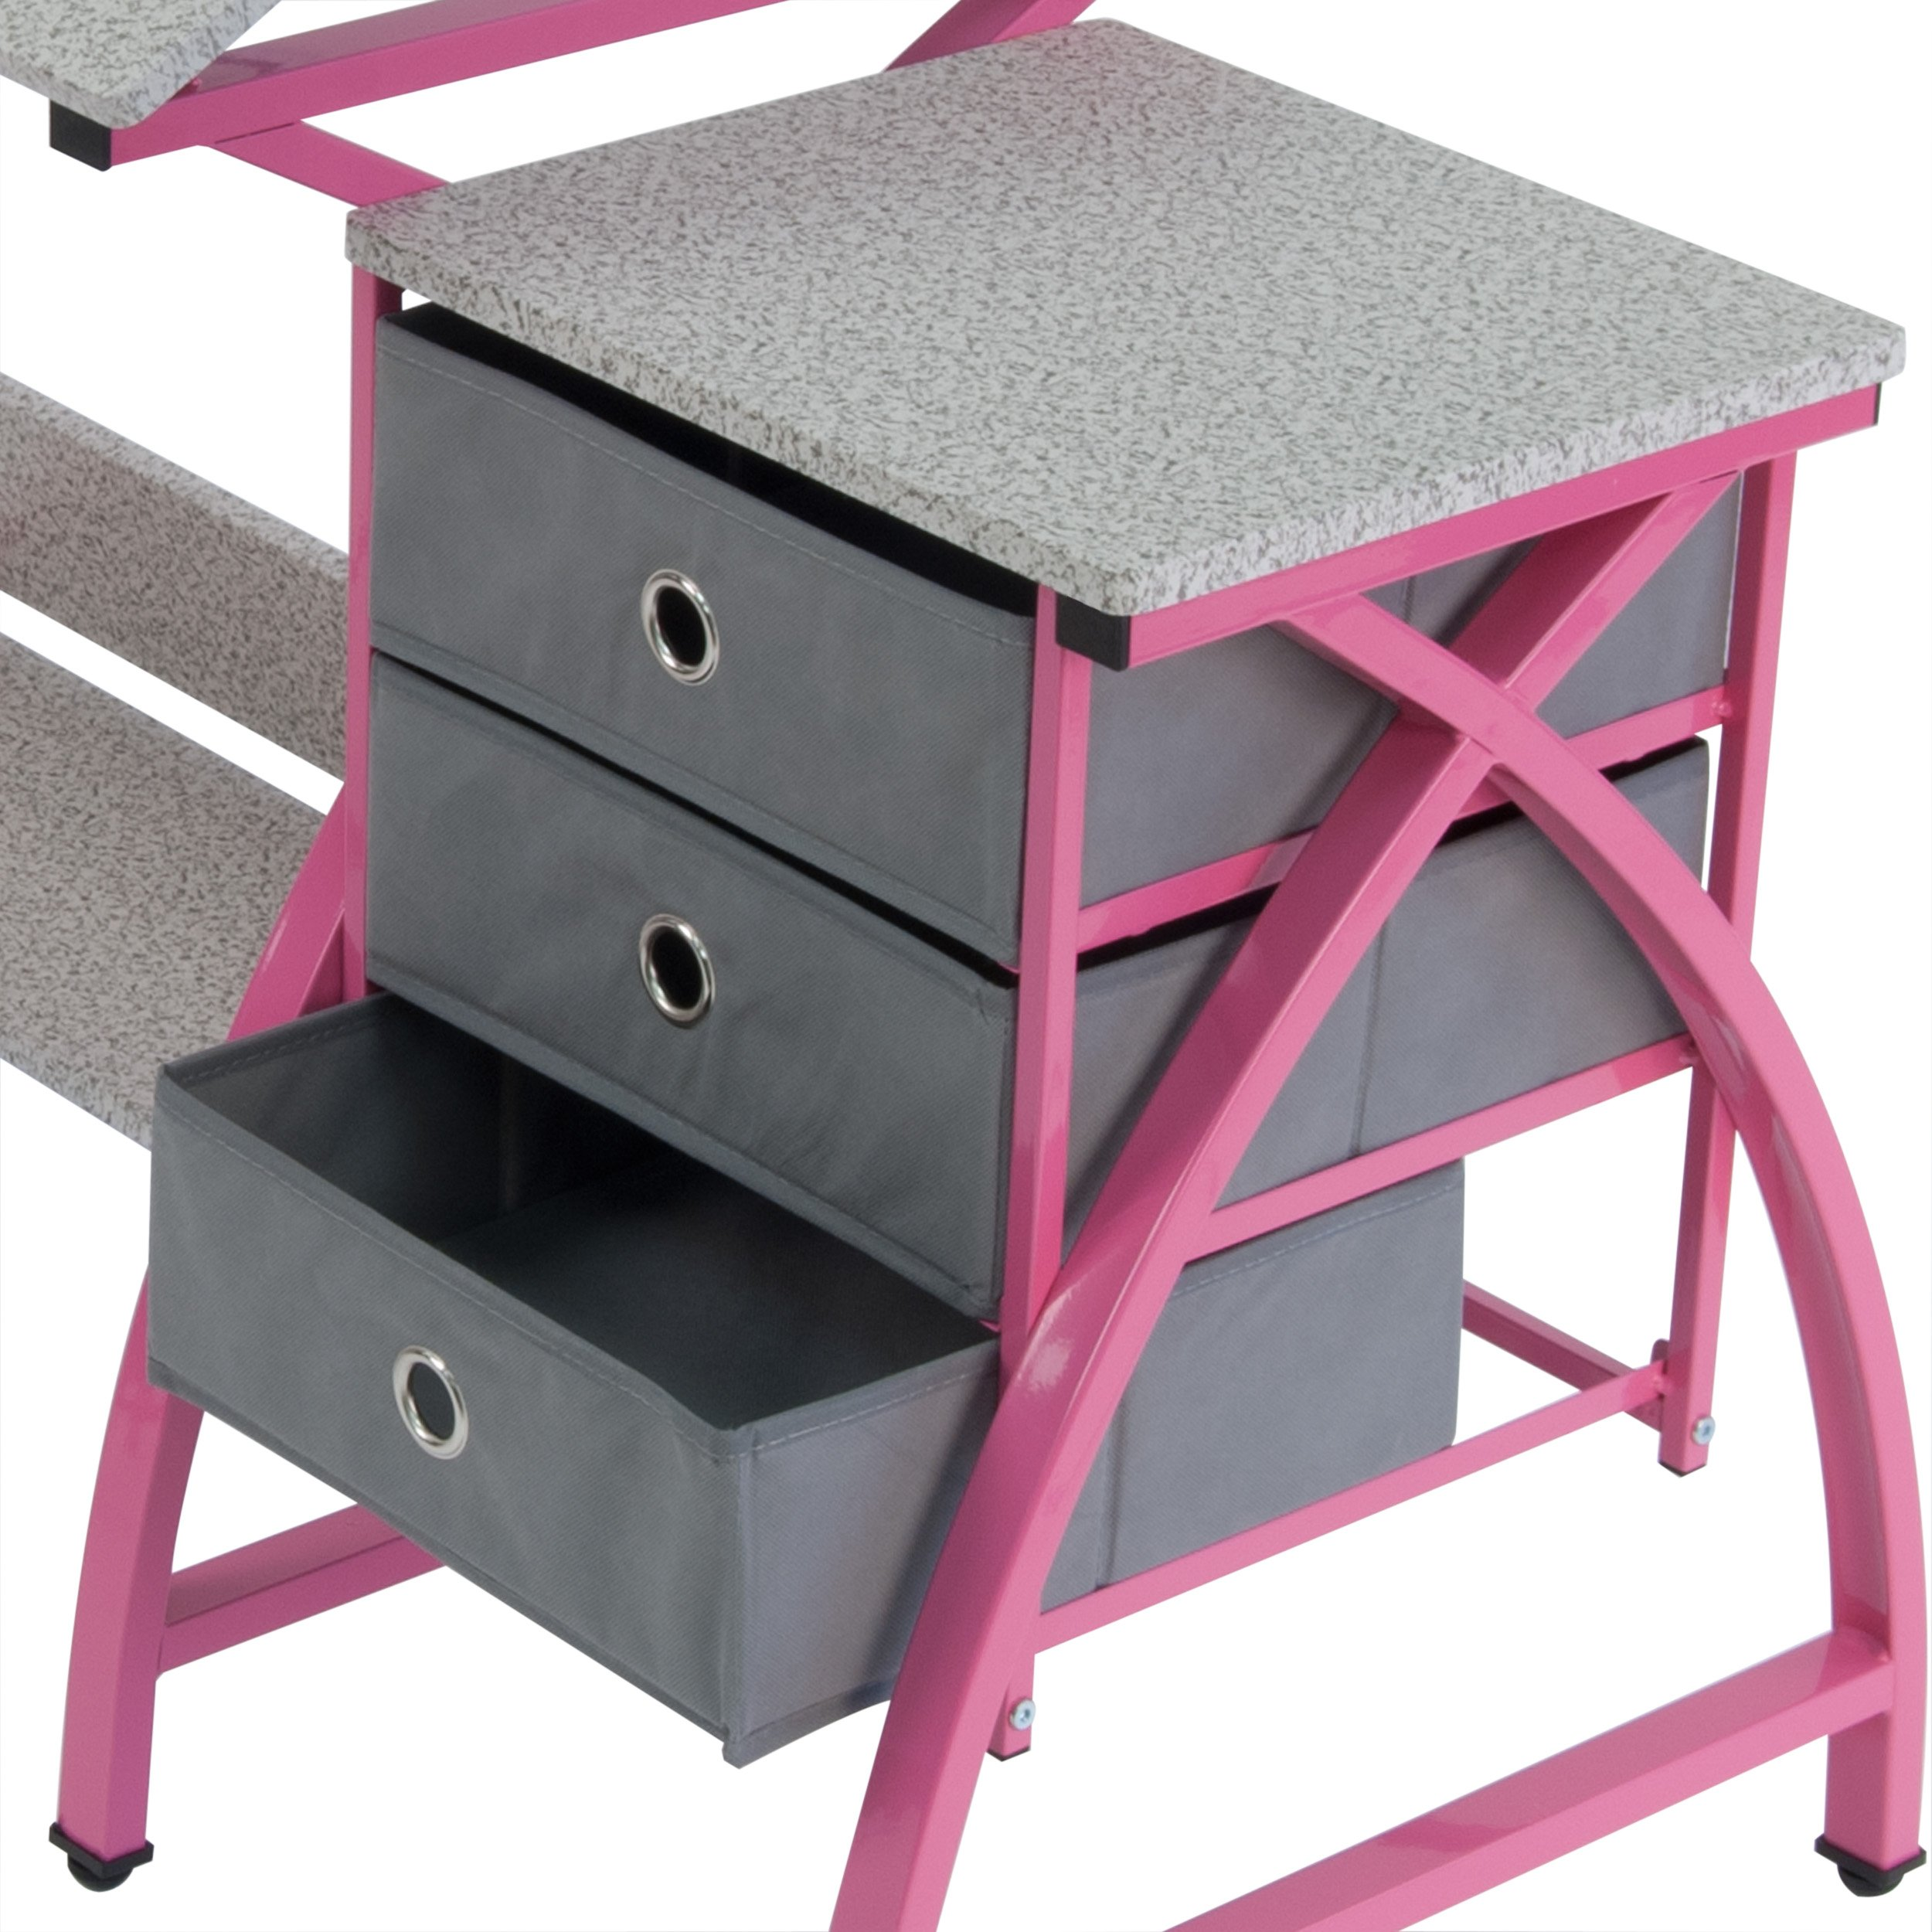 Comet Center with Stool in Pink / Spatter Gray by SD Studio Designs (Image #4)